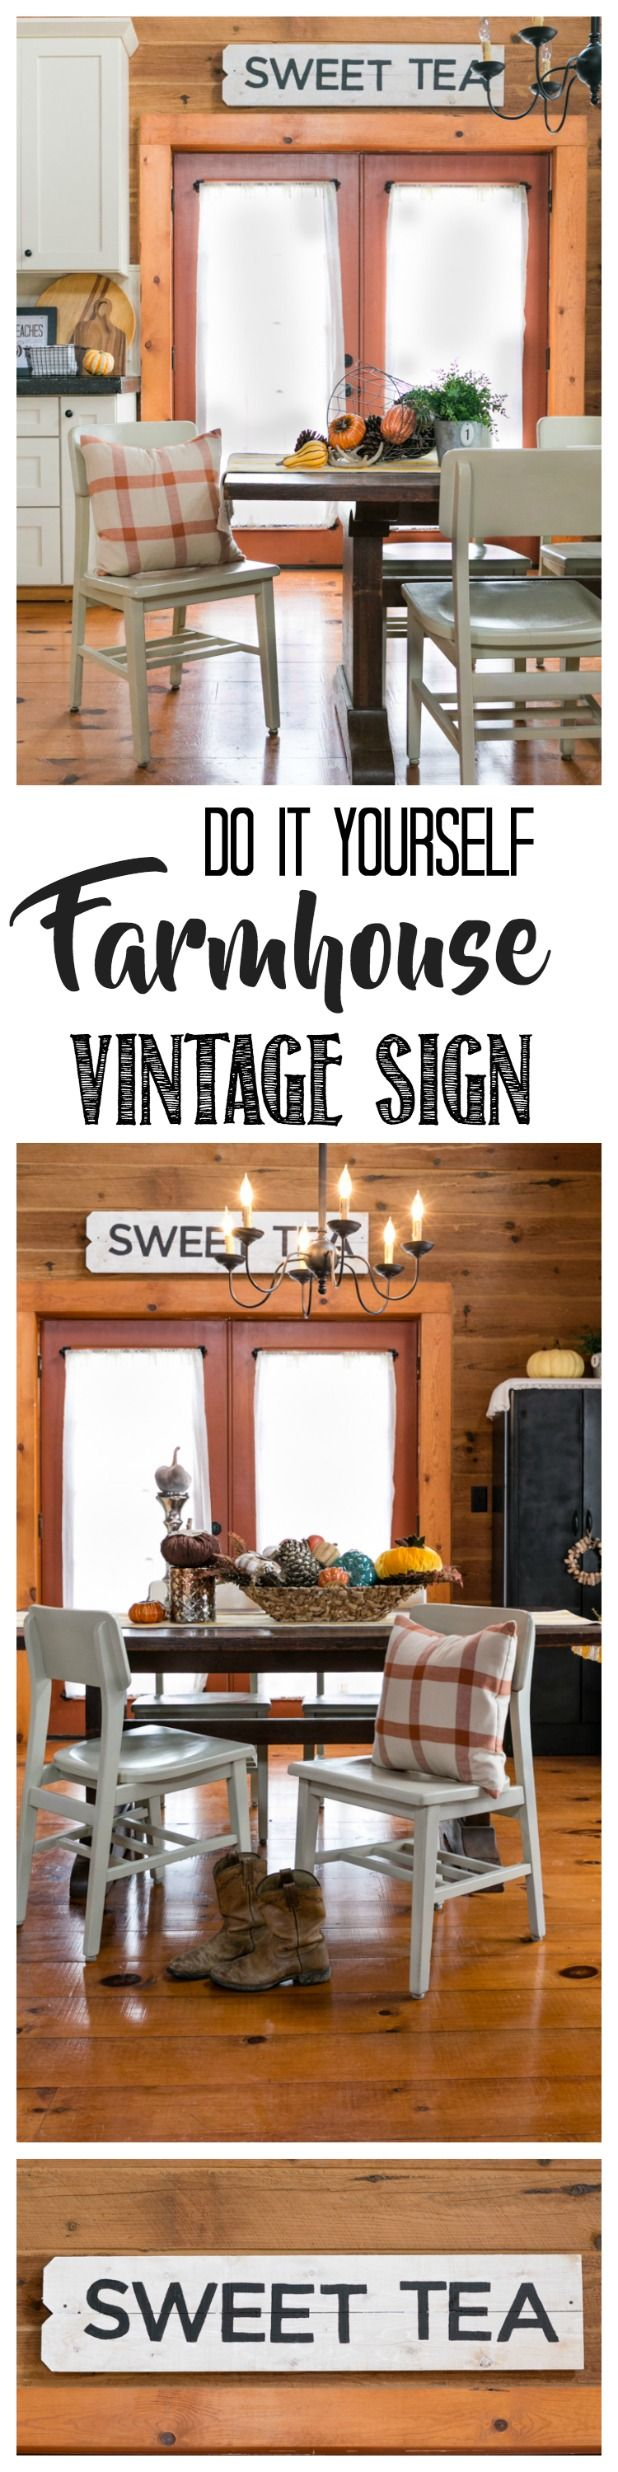 424 best home decor farmhouse style images on pinterest